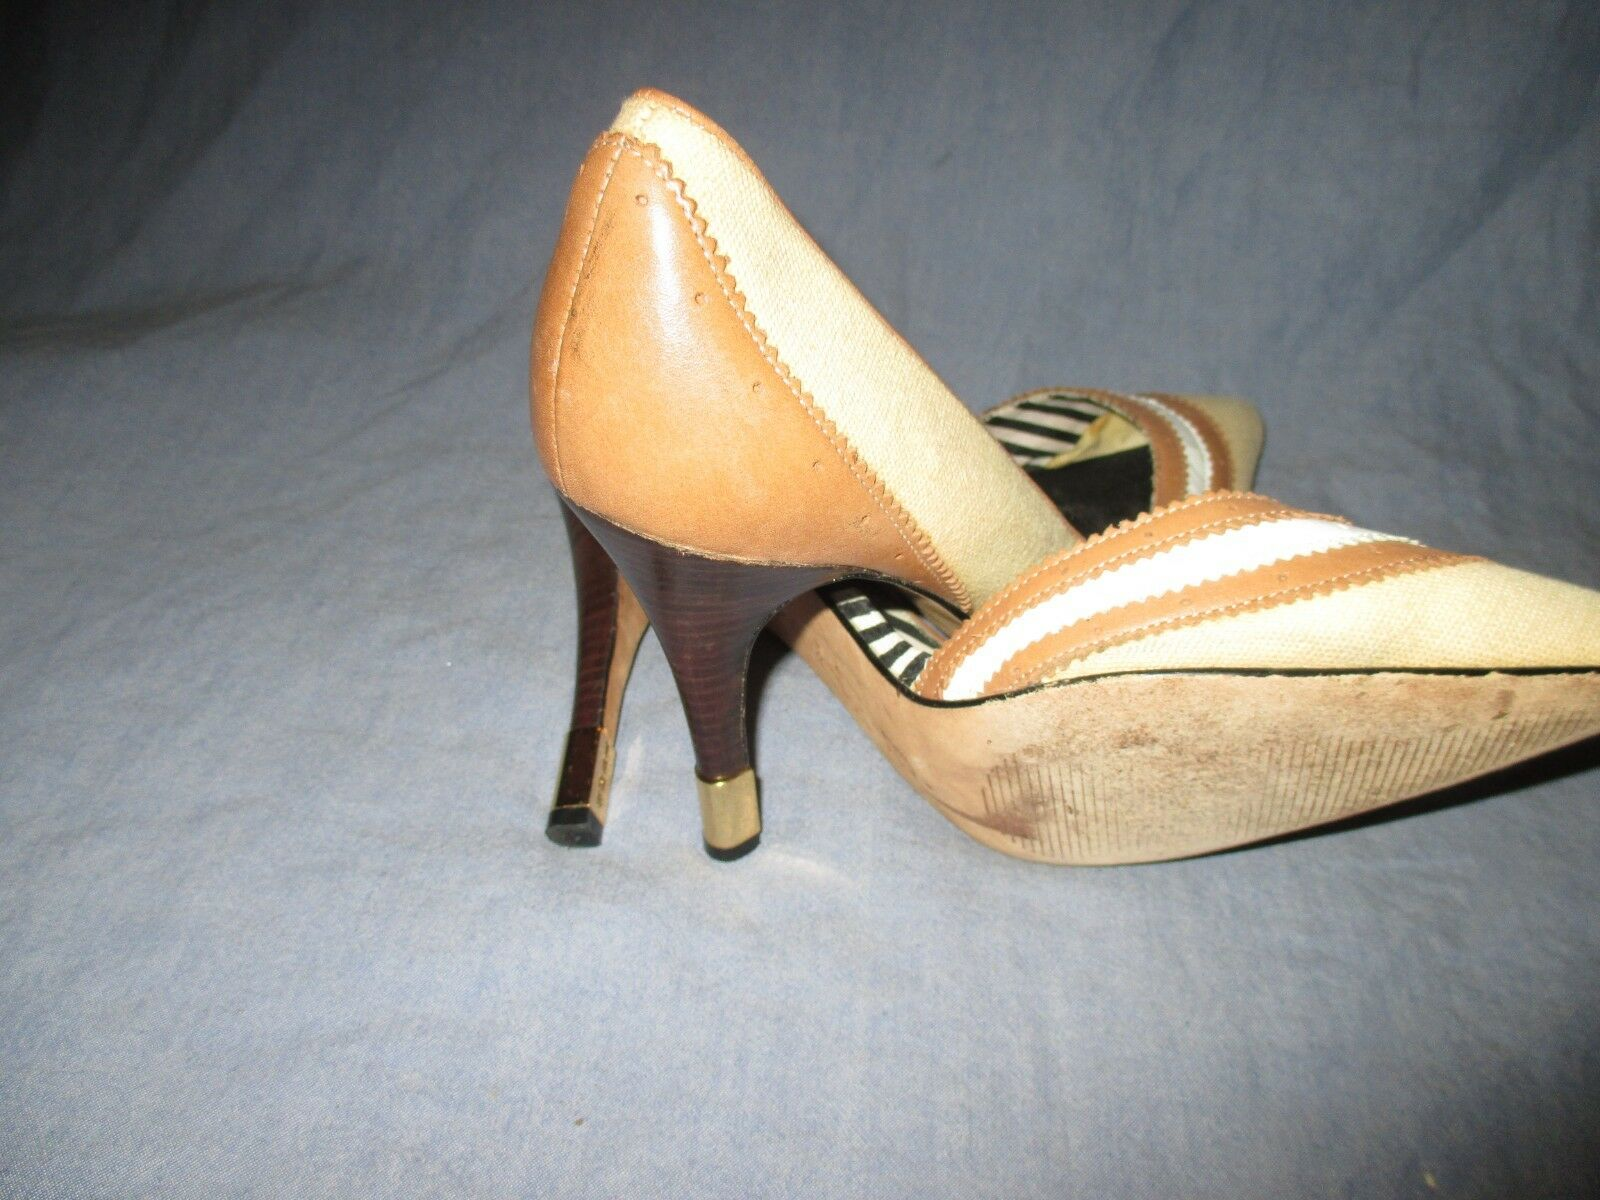 L.A.M.B. Gwen Stefani Schuhes Pumps 9 Heels  Stiletto Größe 9 Pumps 950bbd